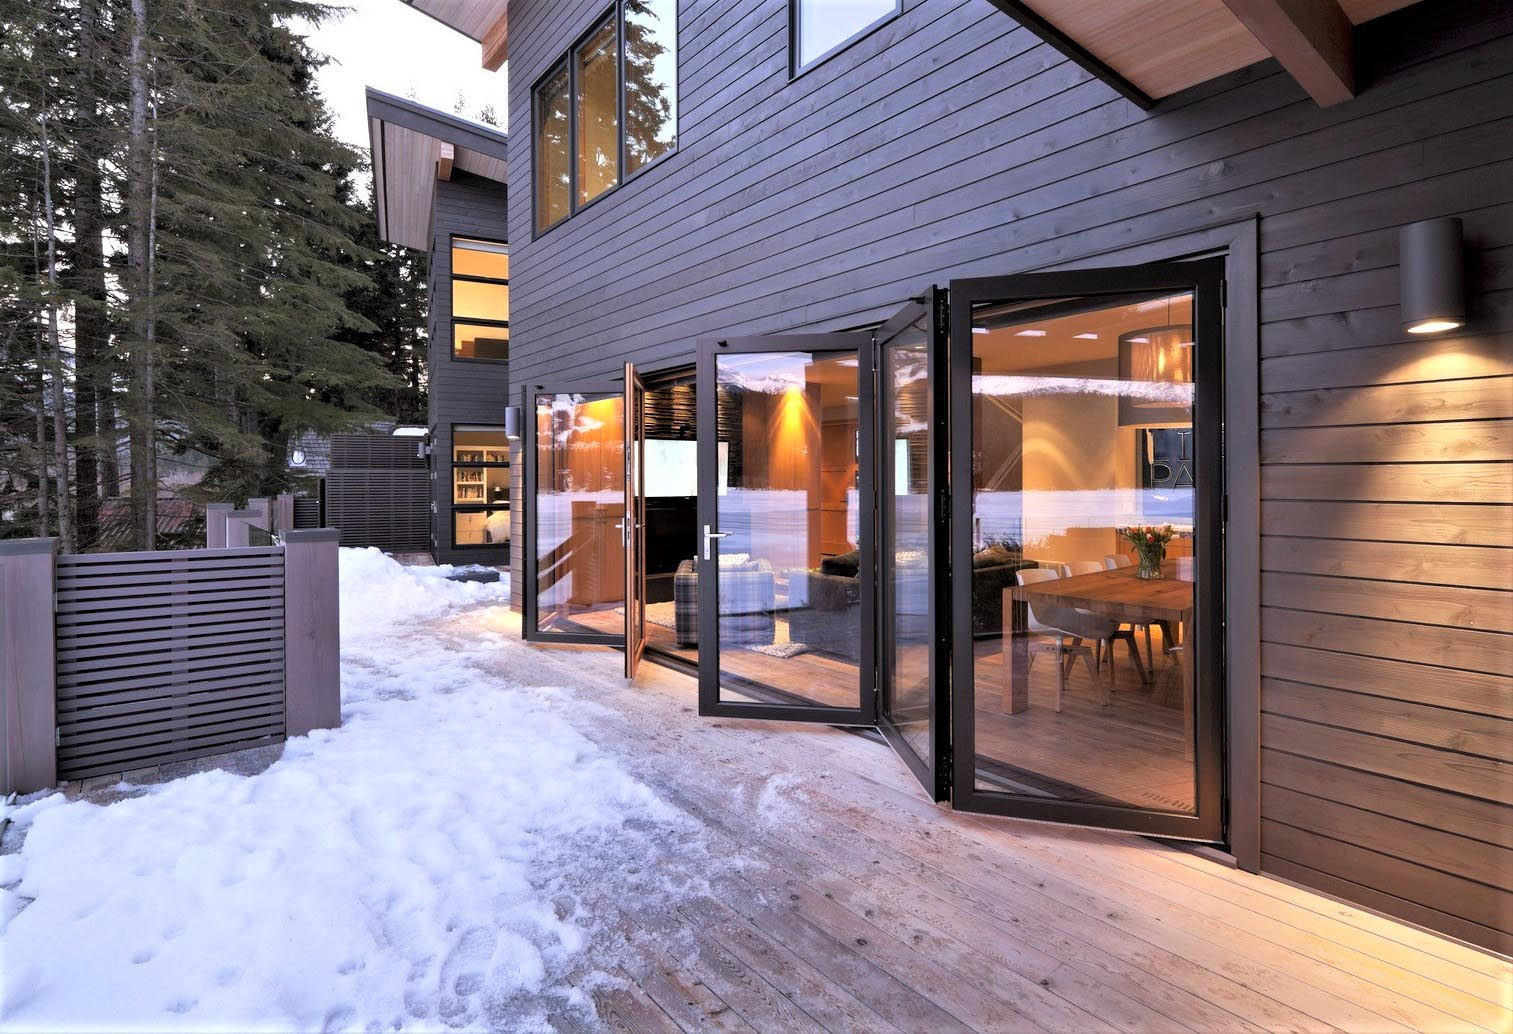 Folding glass walls replace a patio door and perform in harsh weather